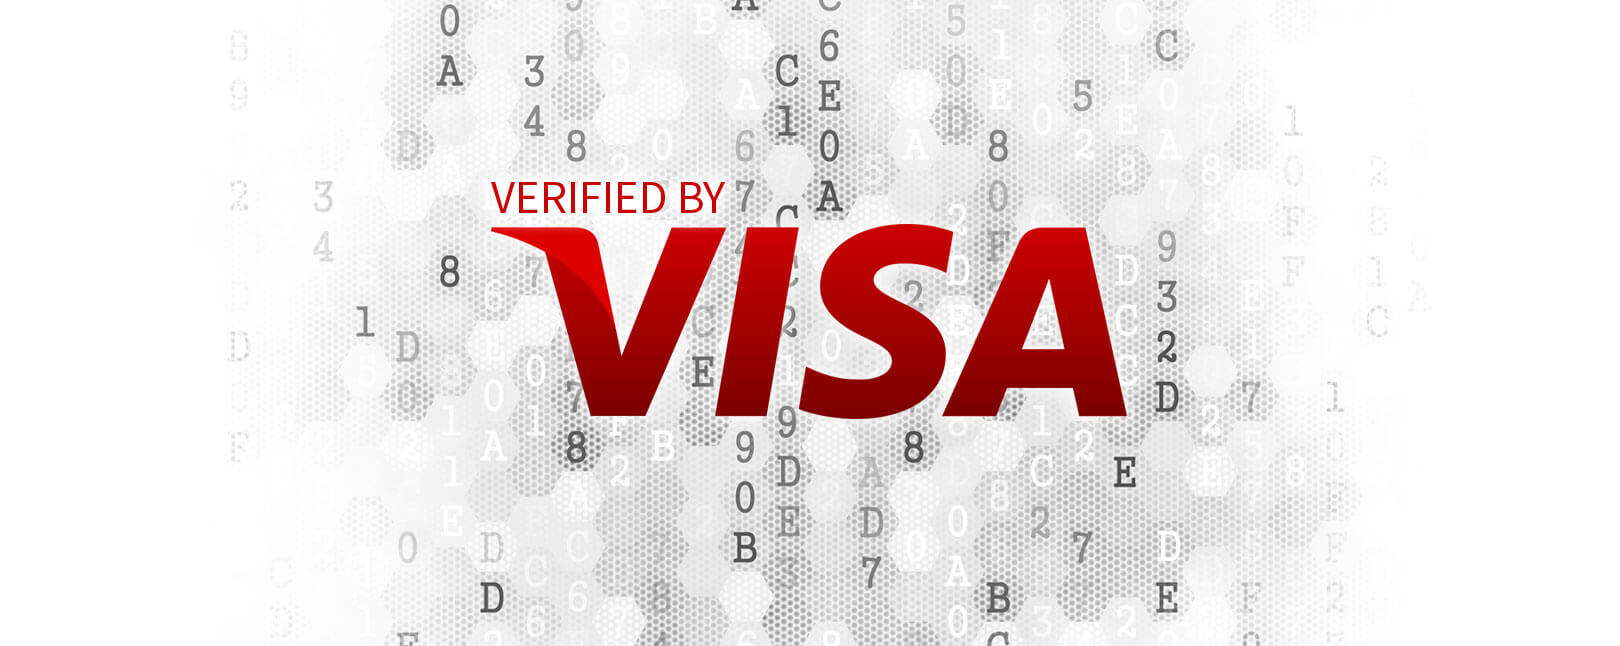 Verified by Visa: How Much Protection Does It Really Offer?